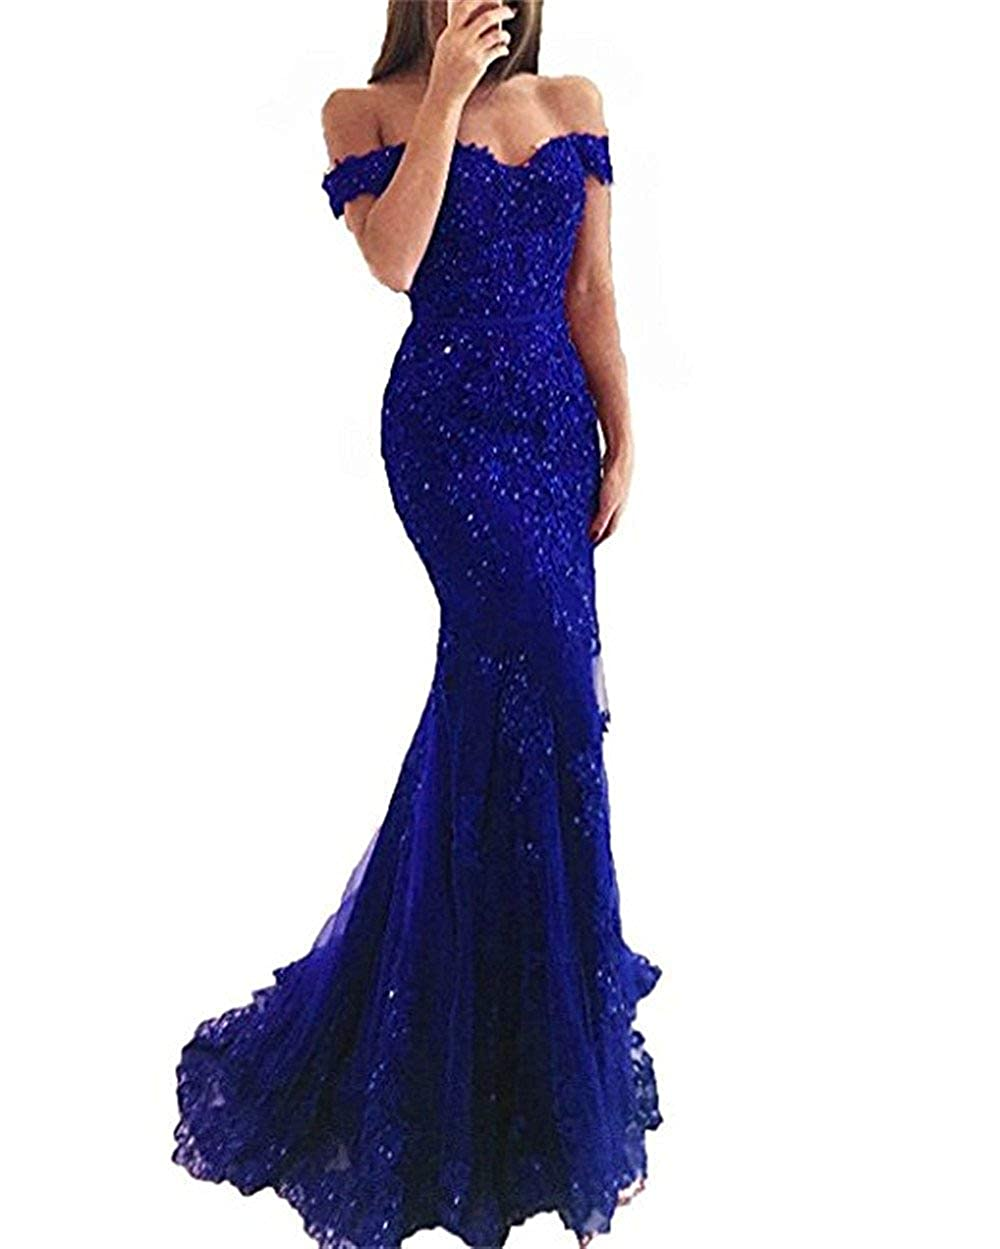 Royal bluee XKYU Women's Lace Mermaid Off Shoulder Long Evening Prom Dress Beaded Formal Party Gown